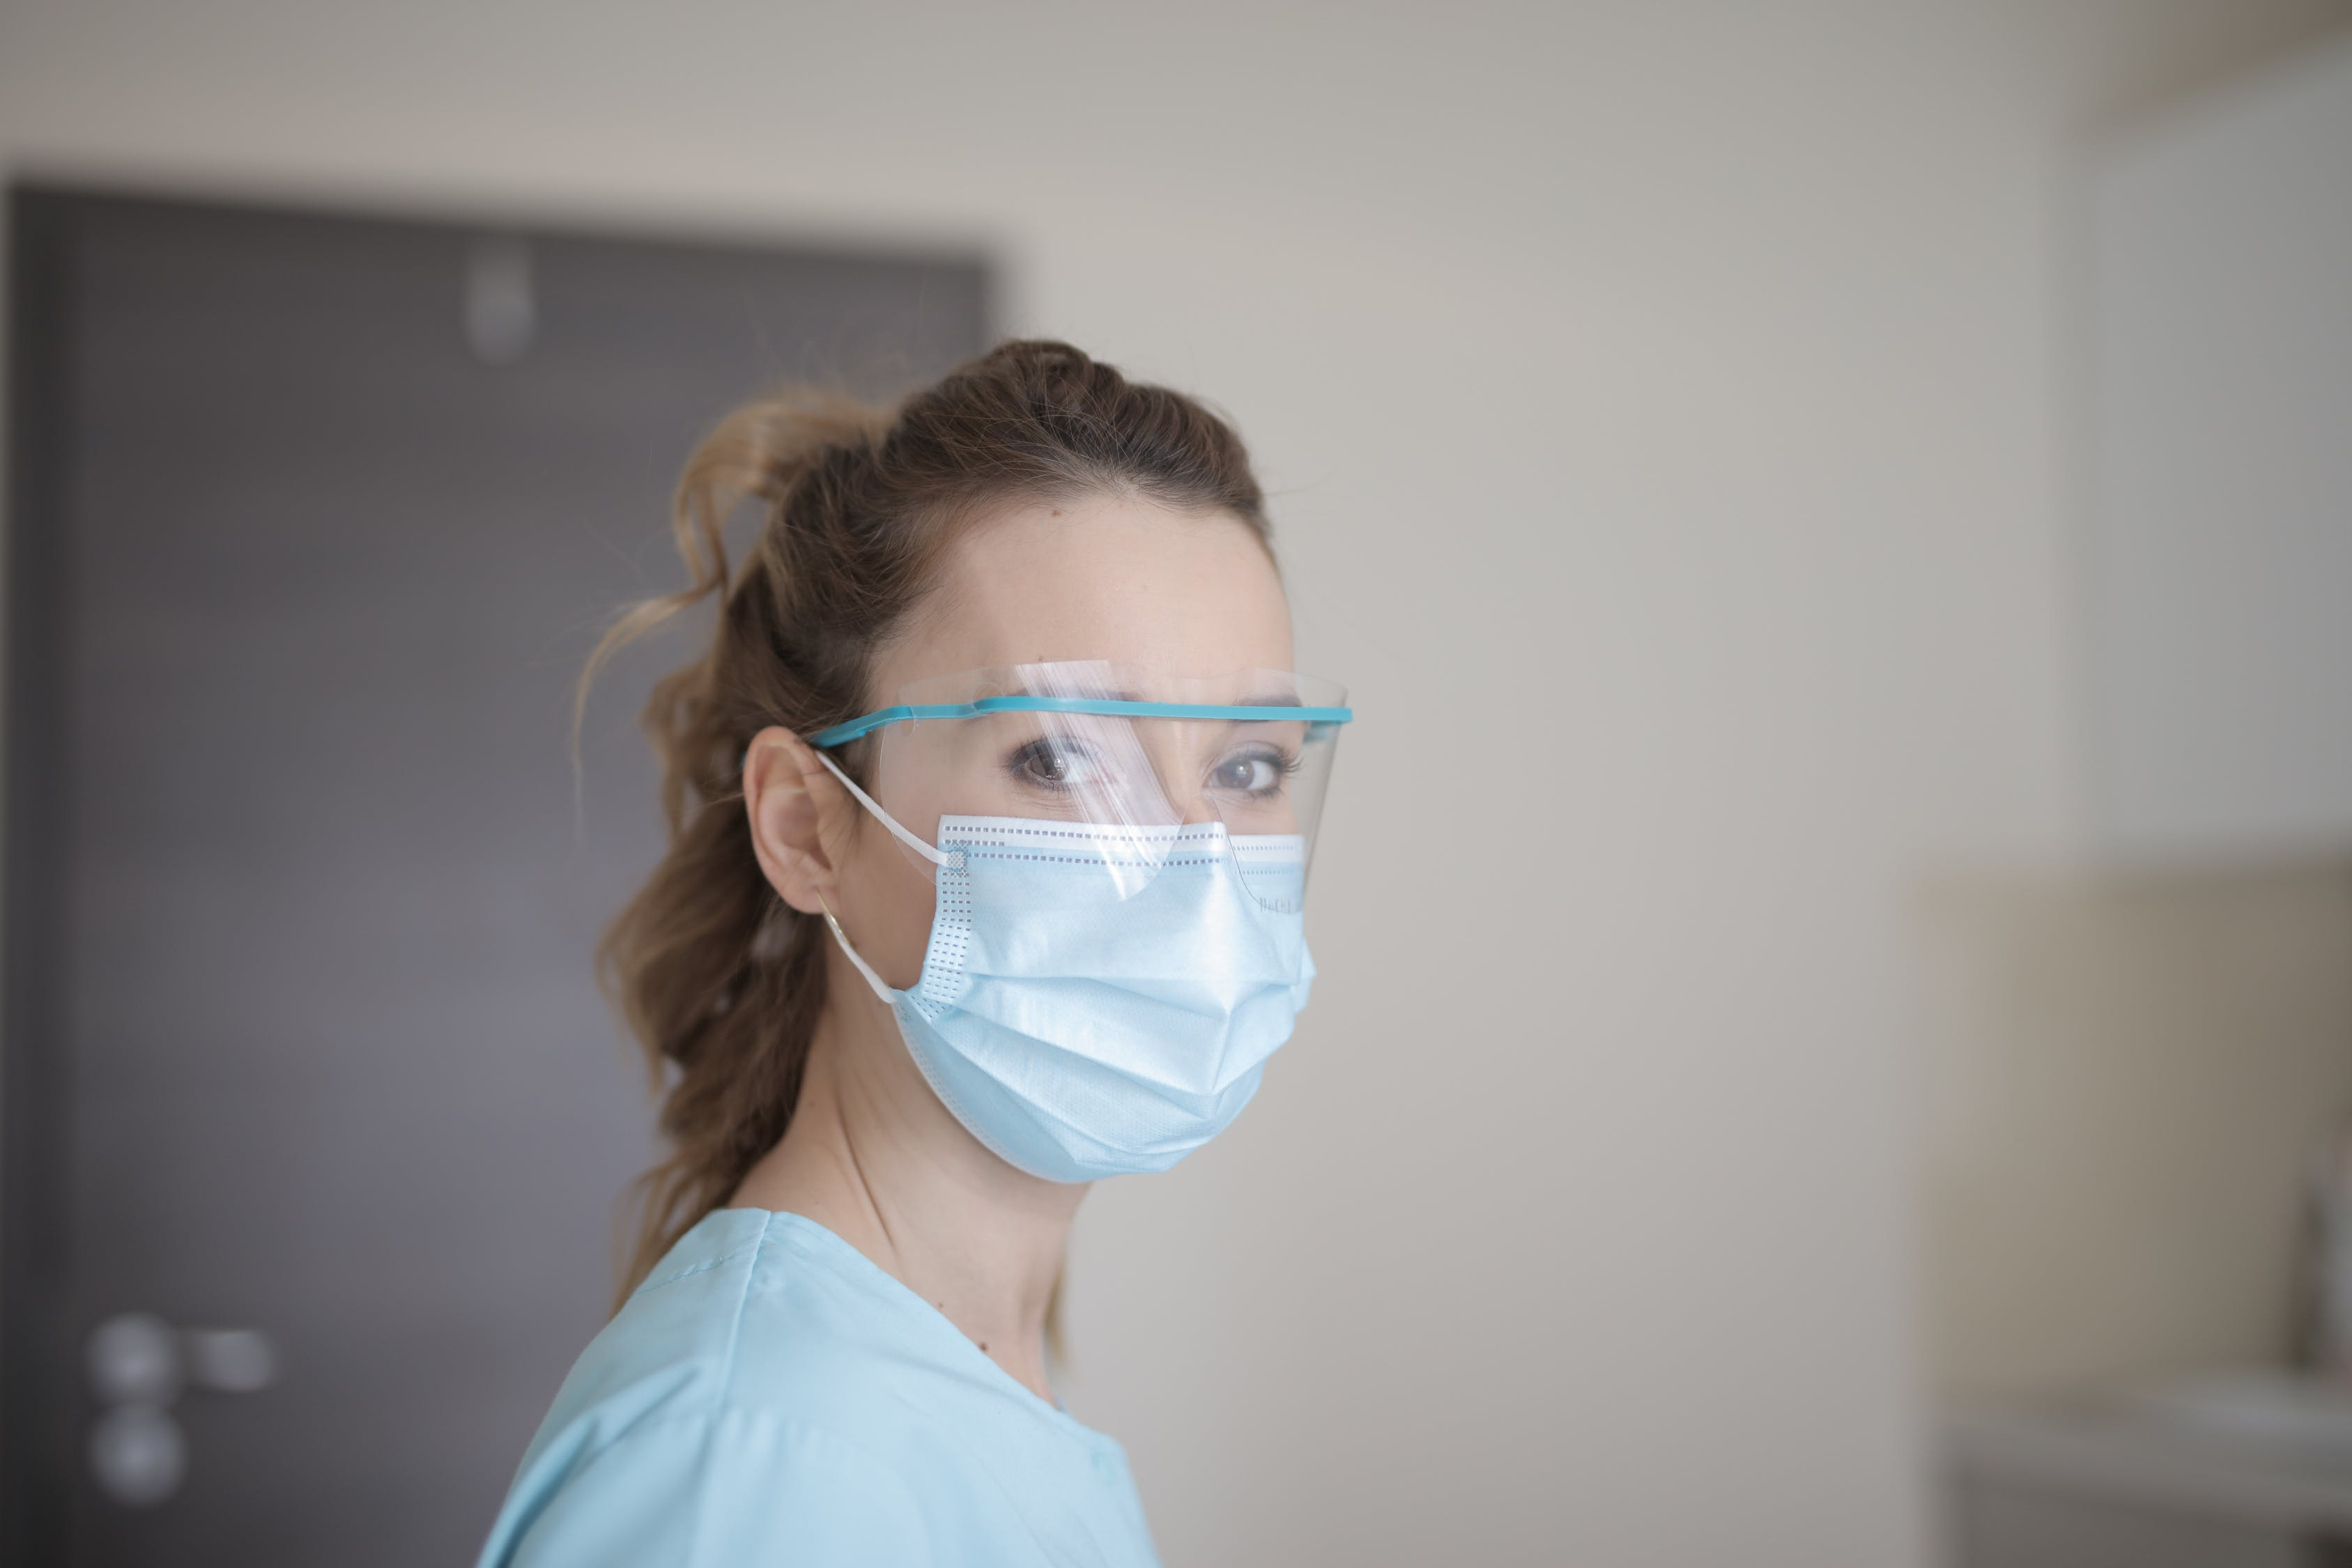 A nurse with curly hair wearing a facemask and a face shield looks at the camera